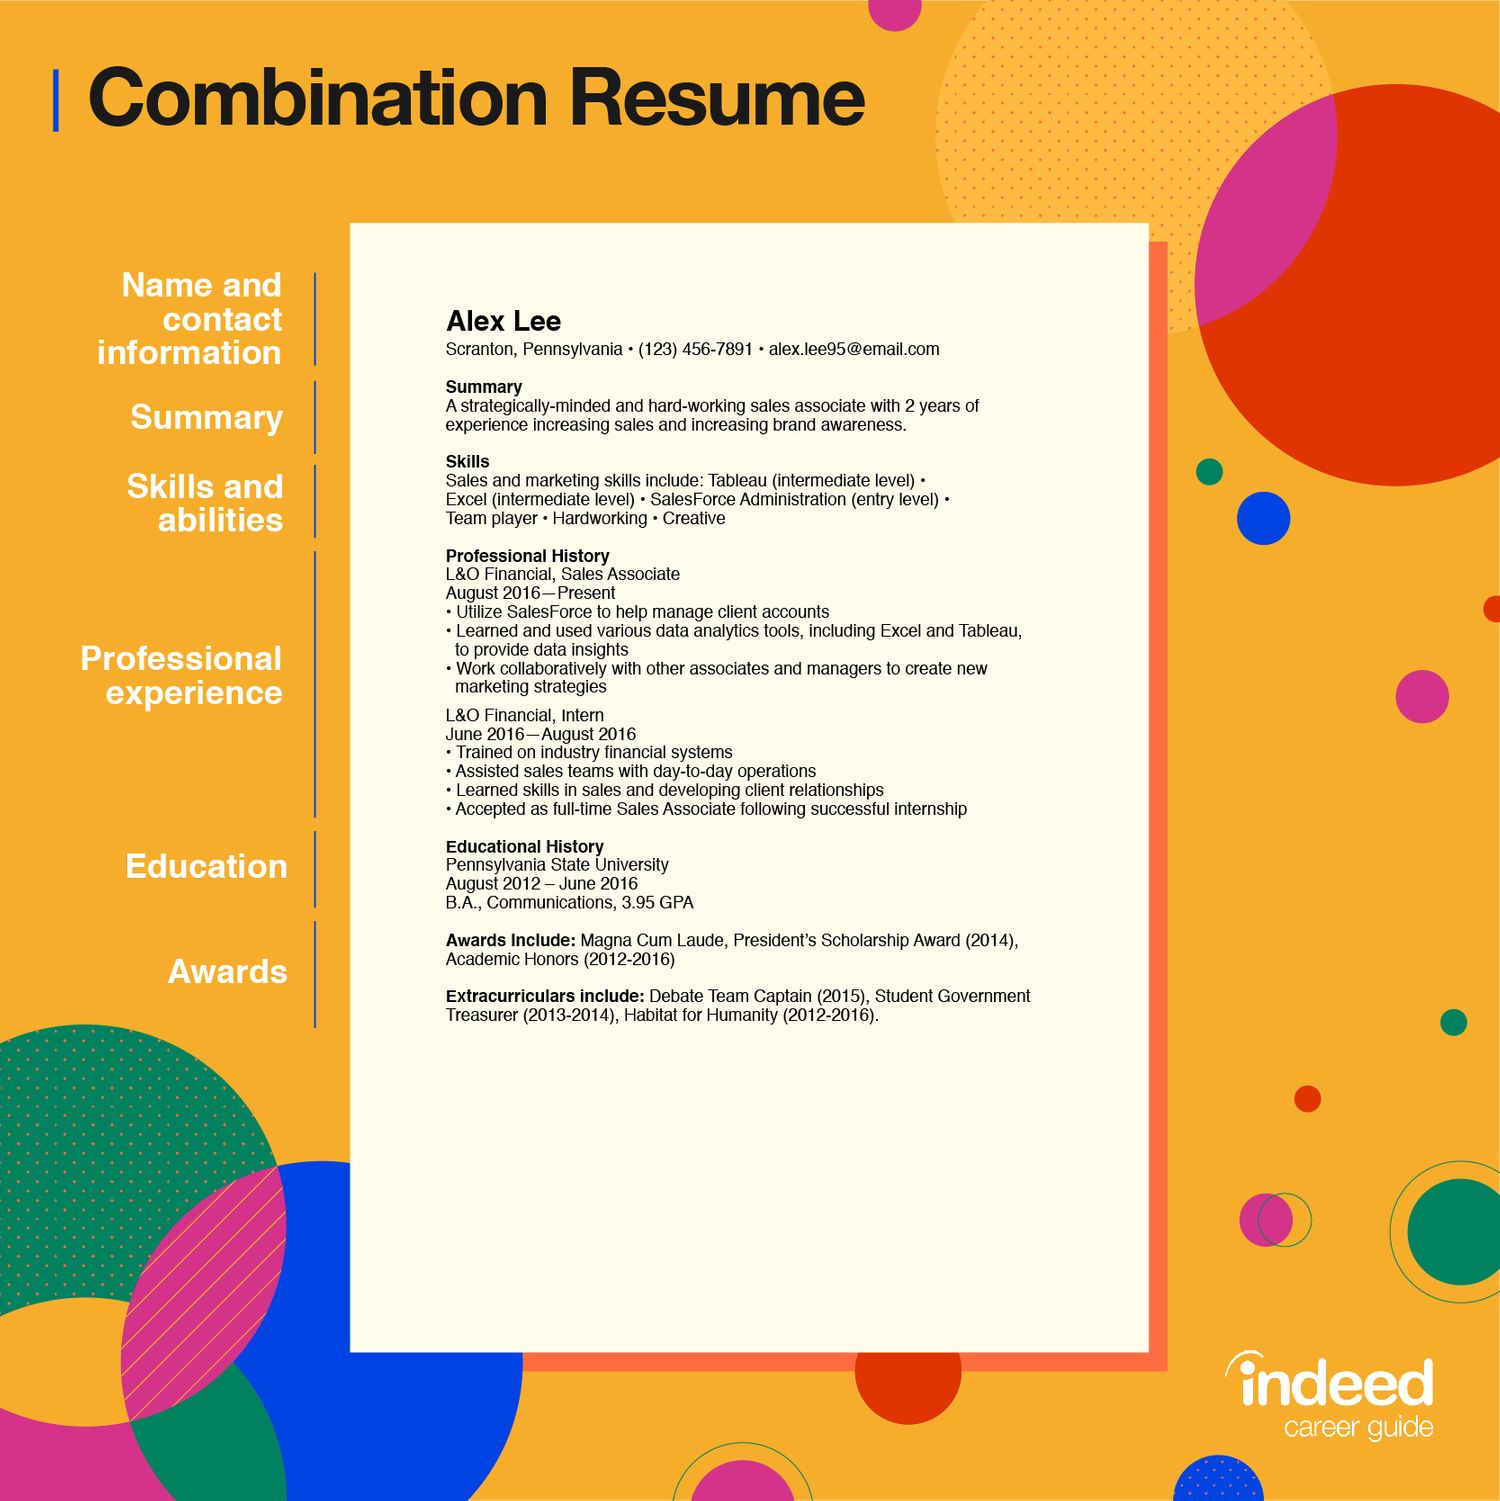 combination resume tips and examples indeed format resized front desk assistant job Resume Combination Resume Format